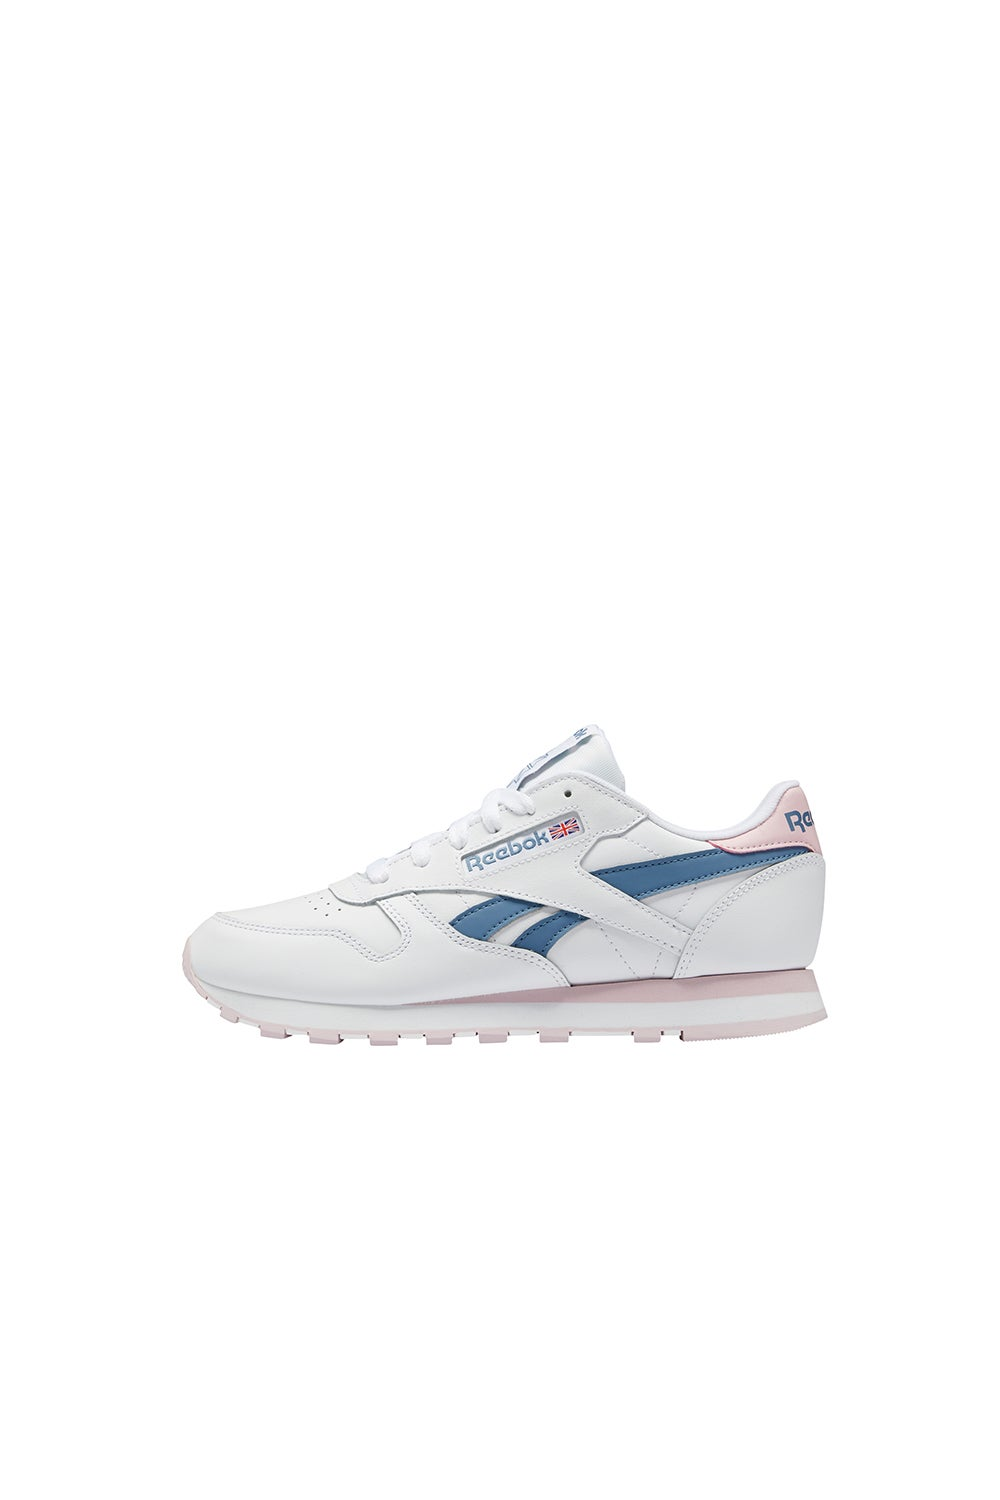 Reebok Classic Leather White/Frost Berry/Blue Slate